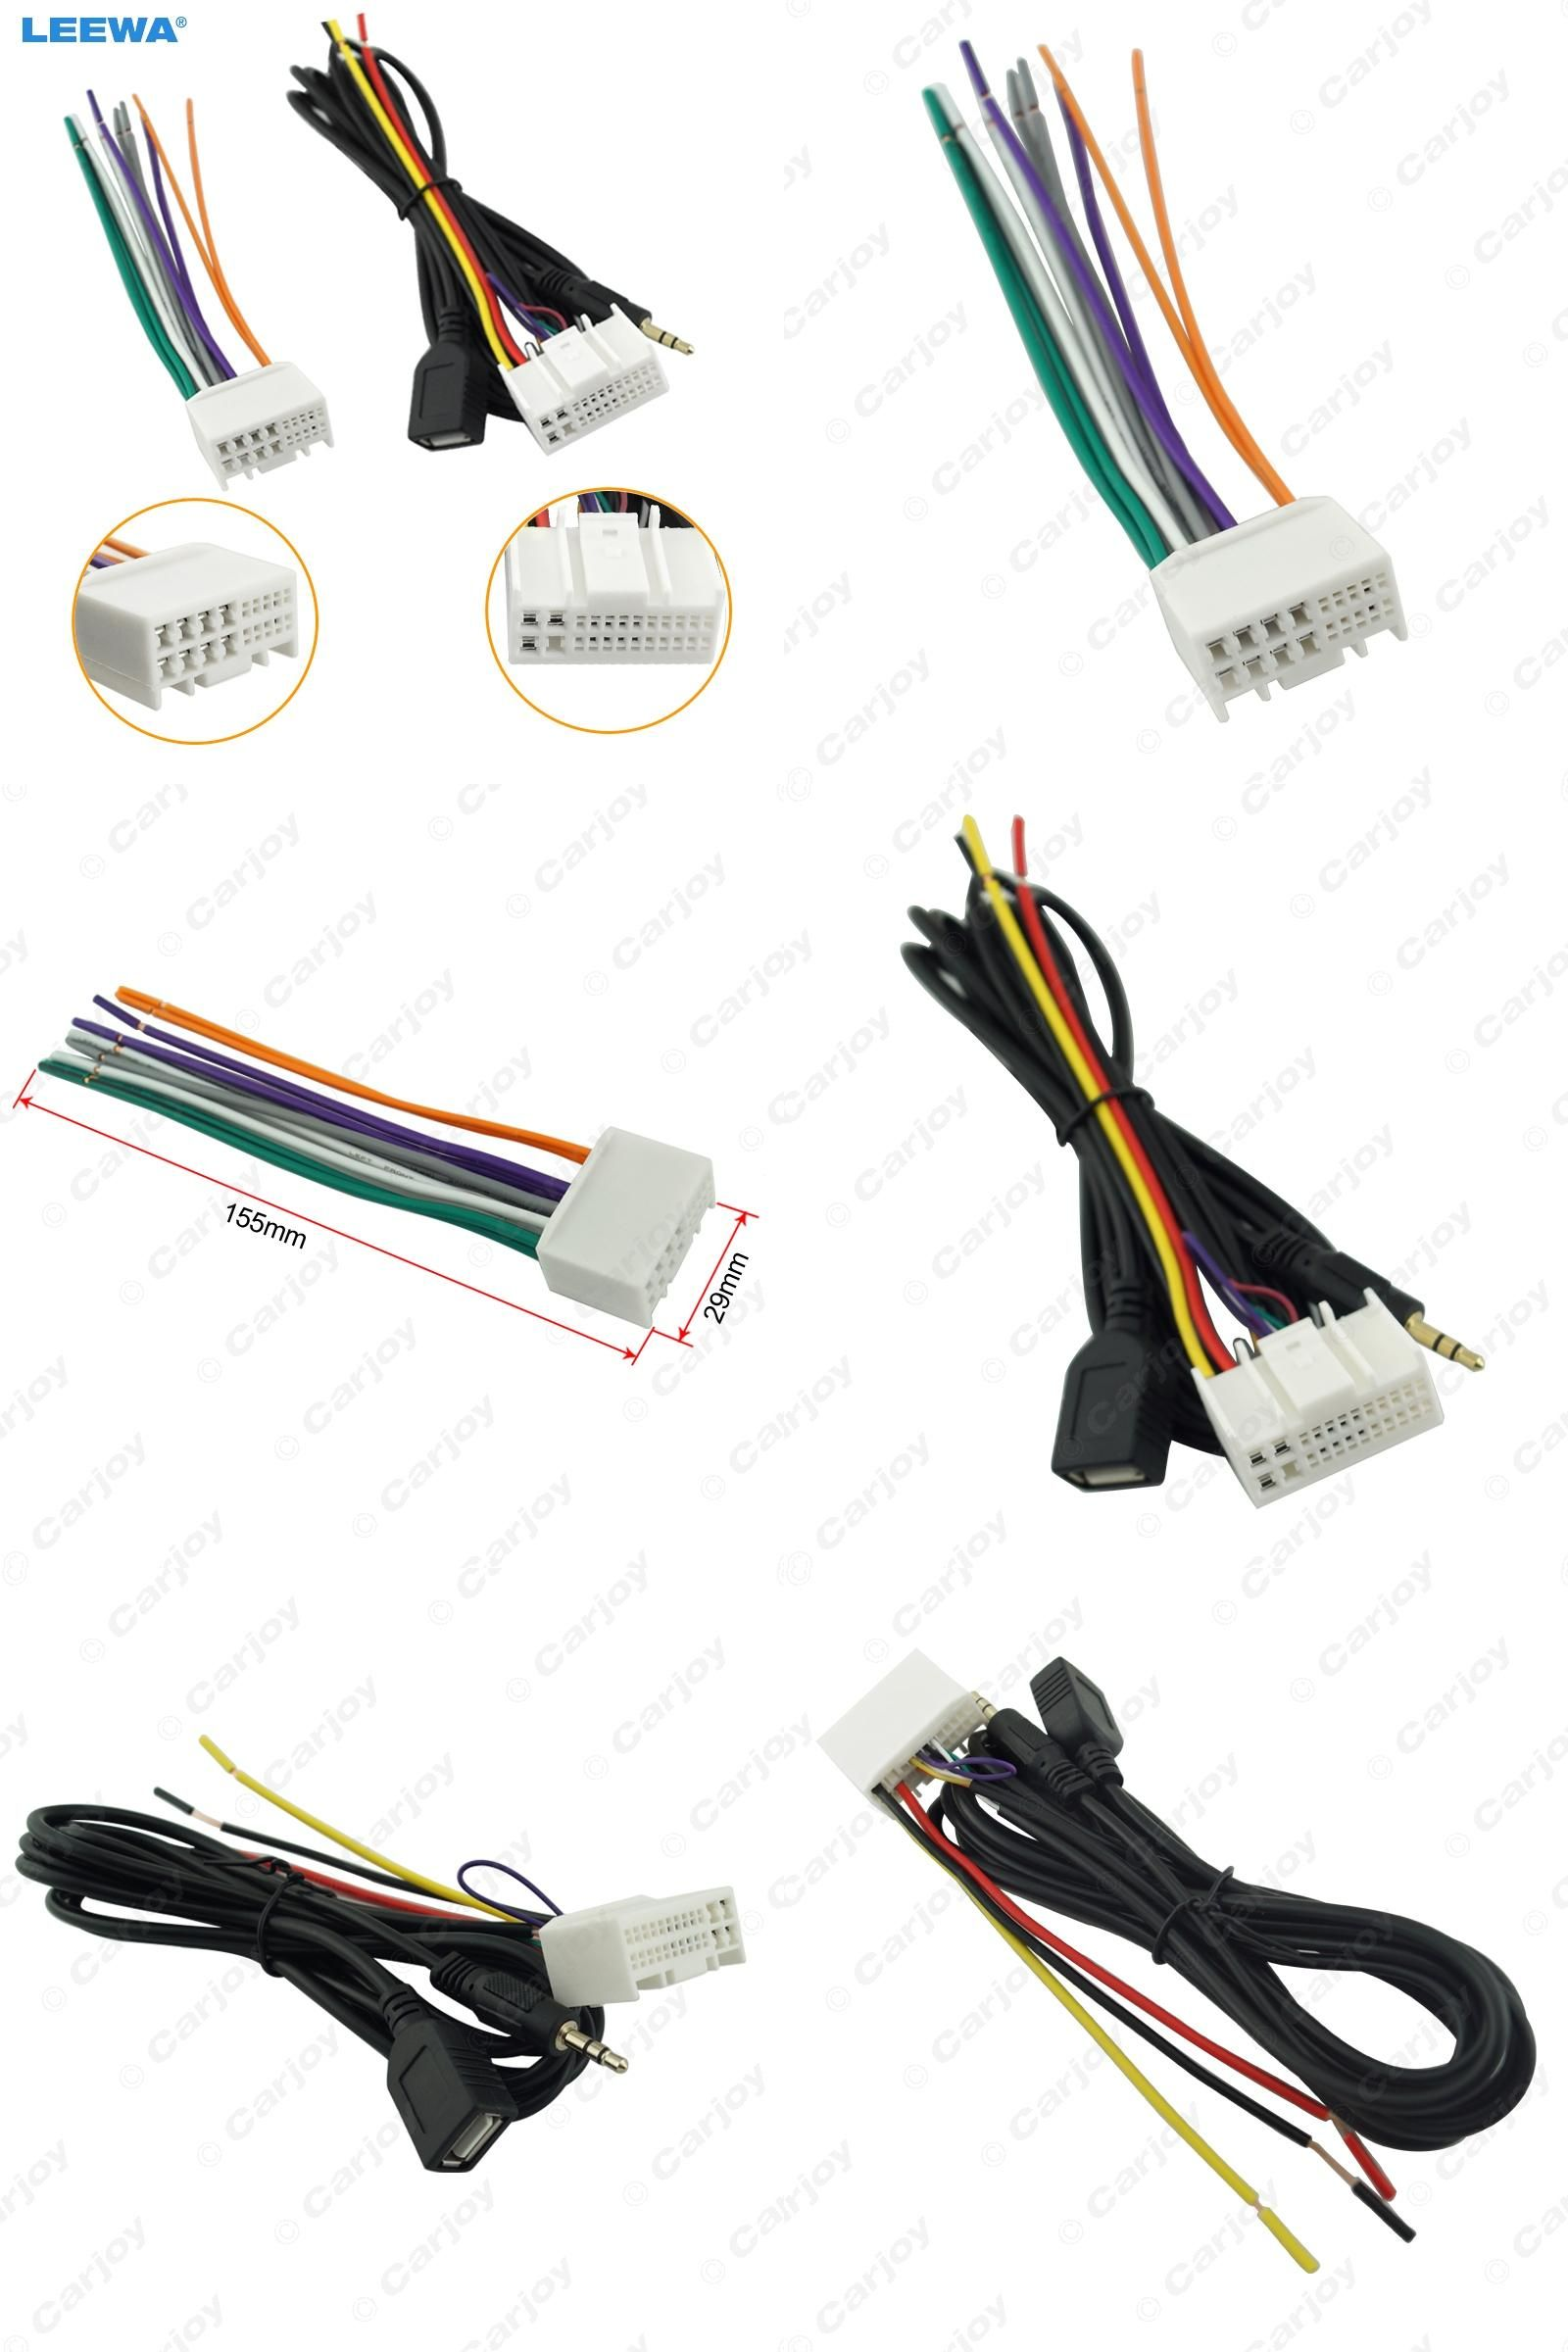 65bba15fb3a8d9bc4f1b698bf8827601 visit to buy] car audio cd stereo wiring harness adapter with usb kia wiring harness at metegol.co